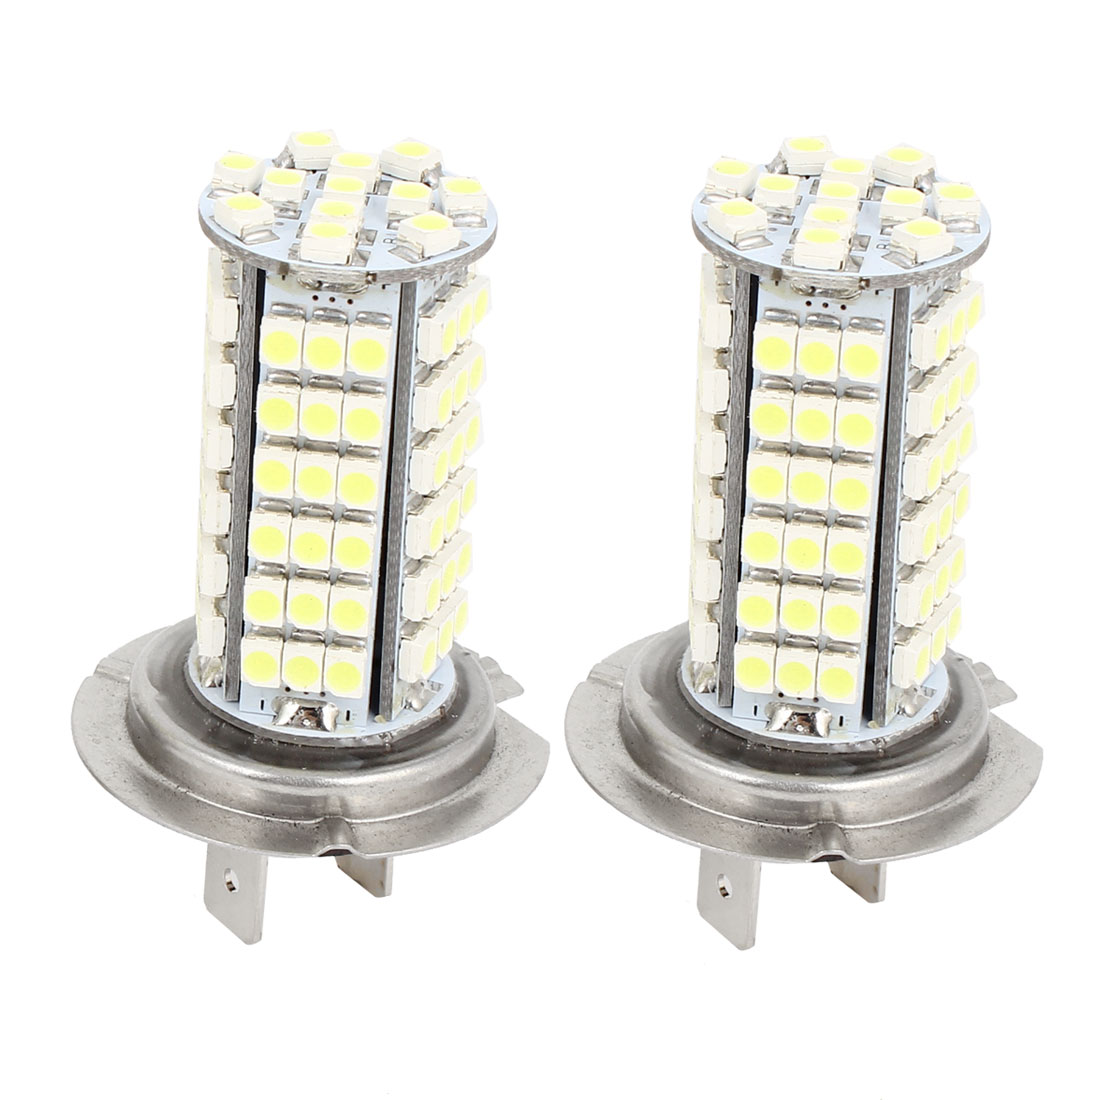 Car White LED 102 SMD 3528 Bulbs H7 Fog Daytime Light Lamp 2 Pcs